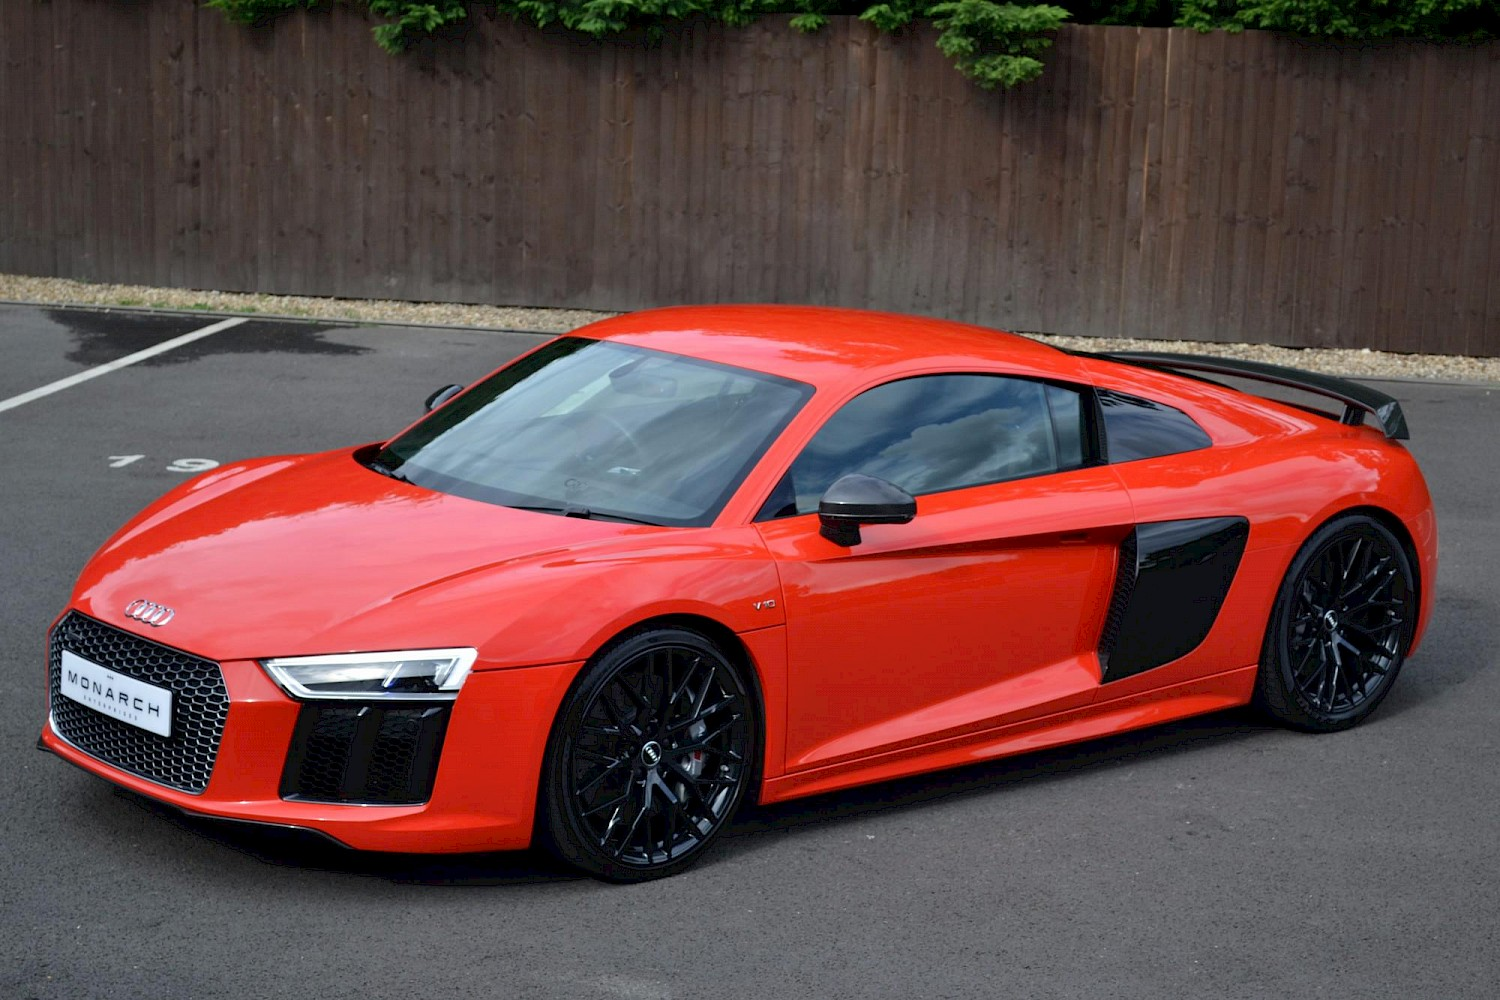 2016 16 audi r8 v10 plus 5 2 v10 610ps s tronic cars. Black Bedroom Furniture Sets. Home Design Ideas